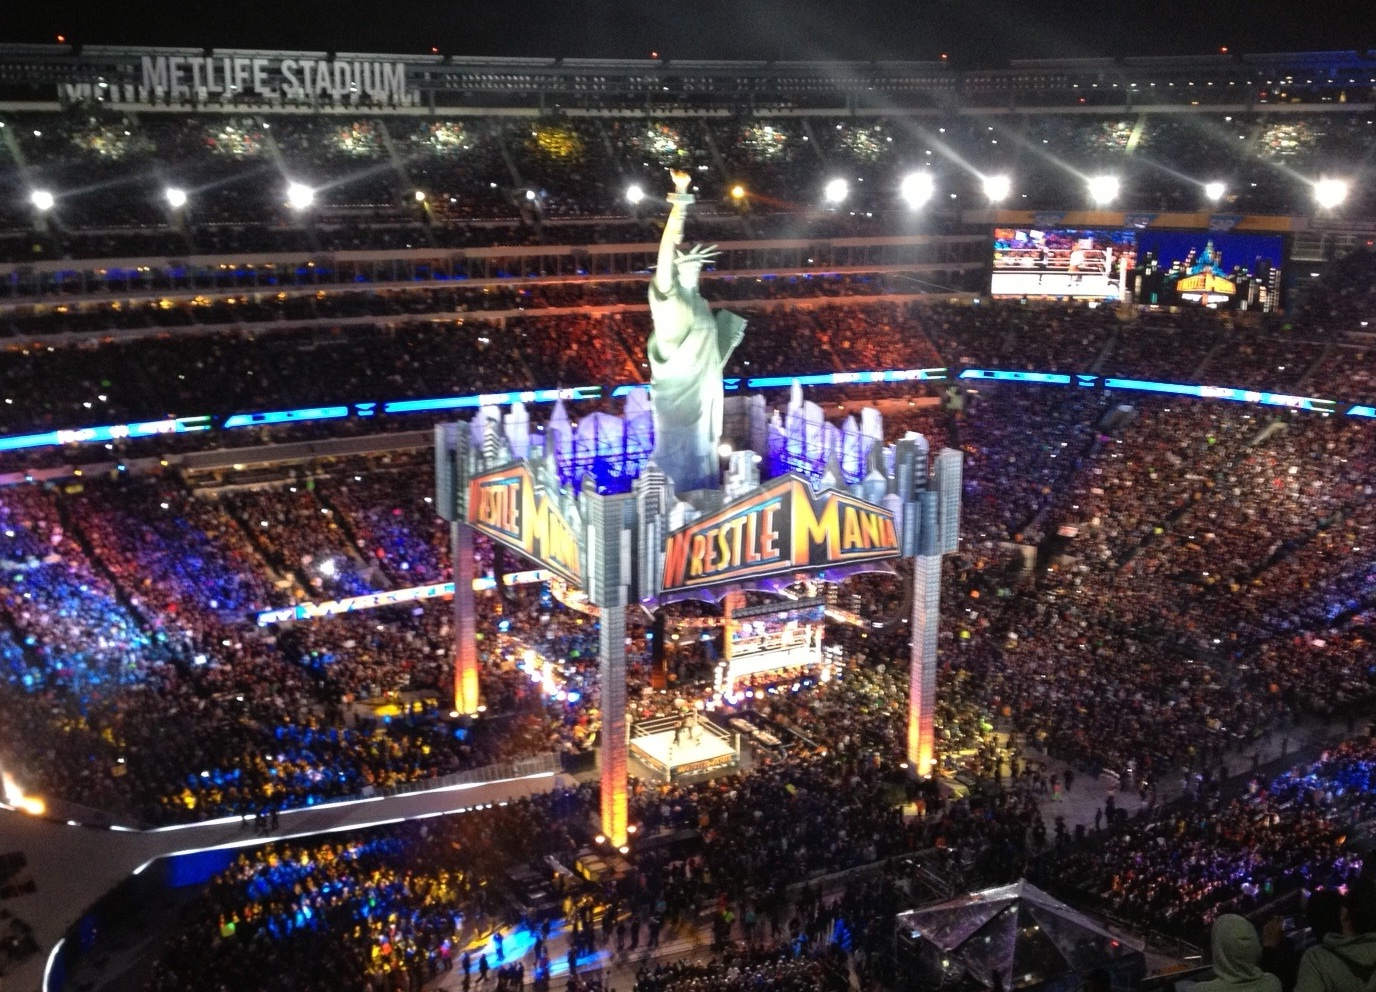 This is a list of WWE pay-per-view events, detailing all professional wrestling cards promoted on pay-per-view (PPV) by WWE.. WWE has broadcast pay-per-views since the s, when its classic